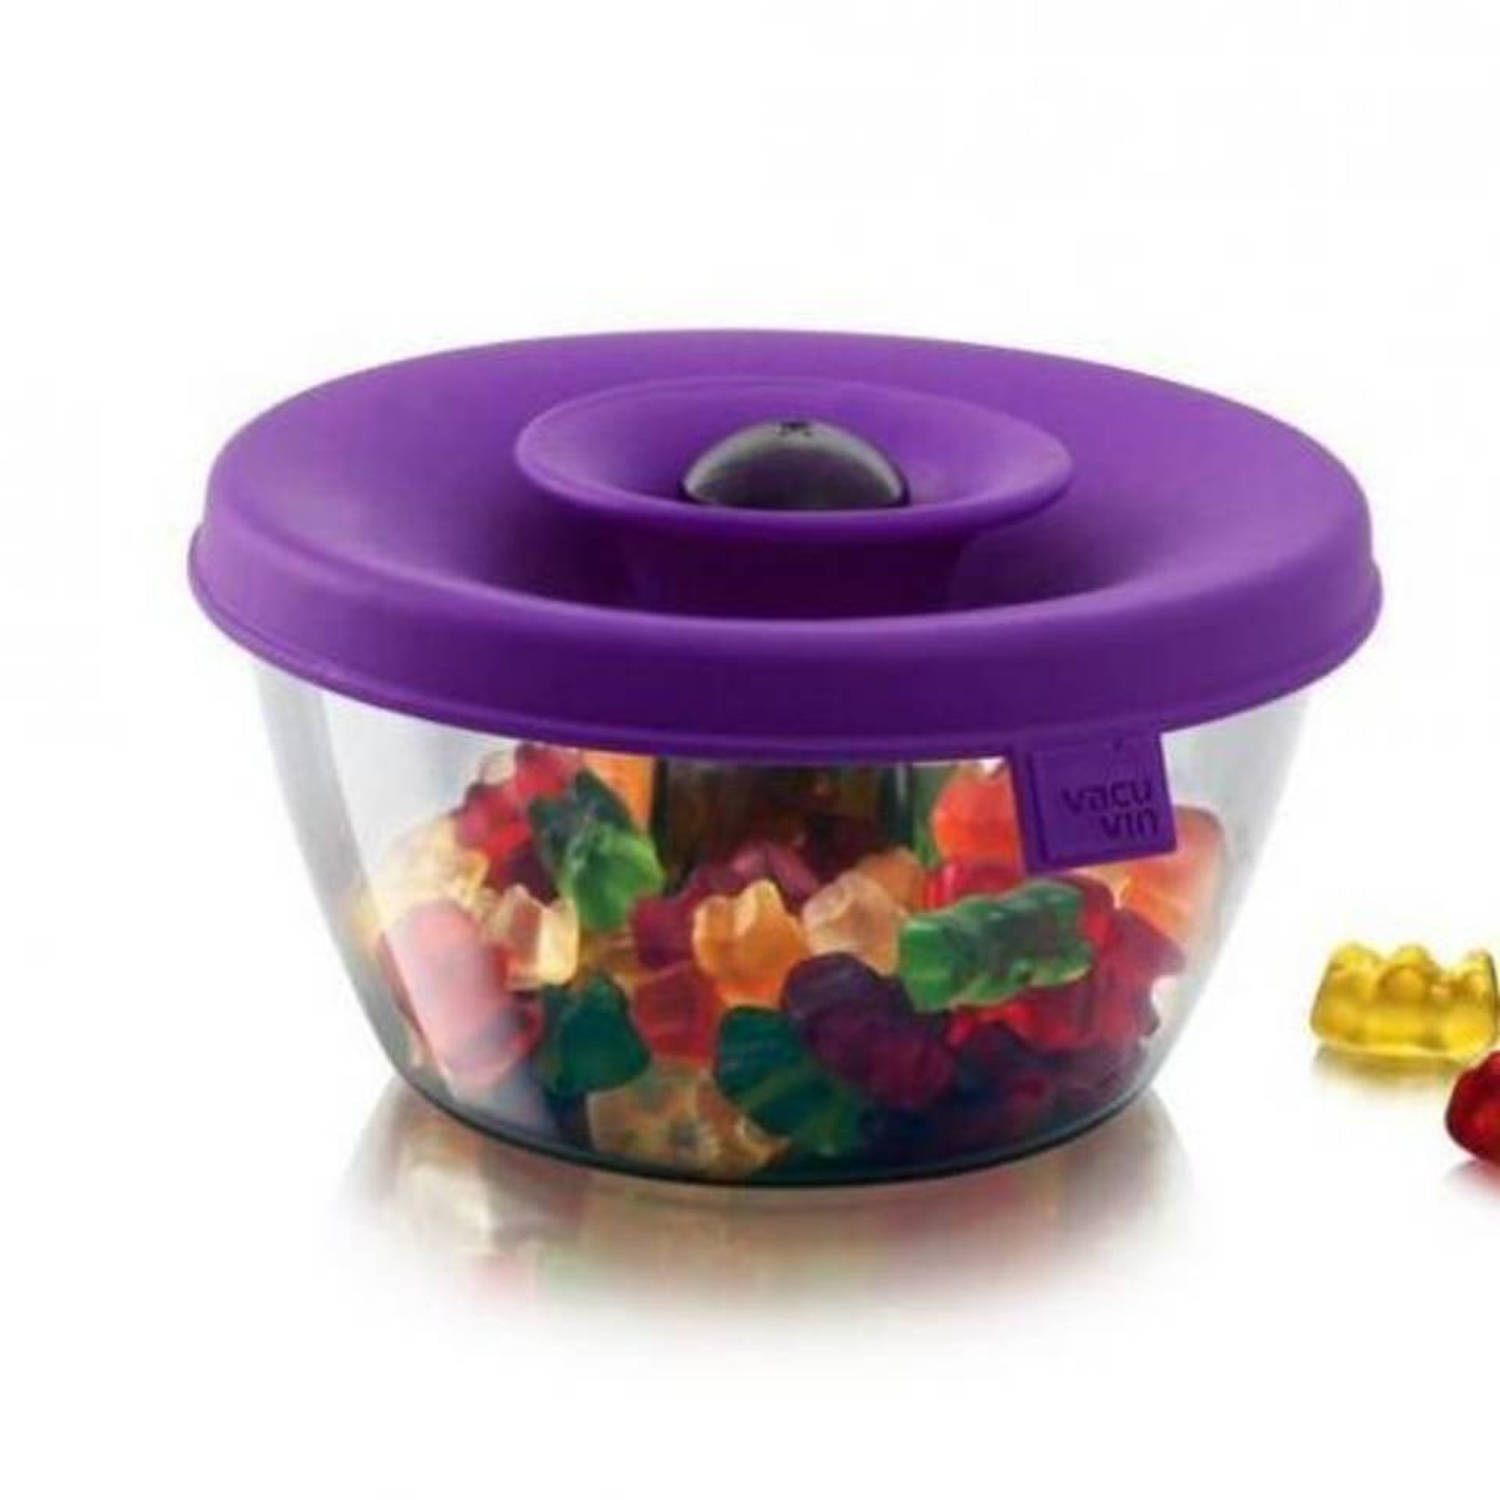 Popsome candy & nuts 0,45 liter, paars - tomorrow's kitchen